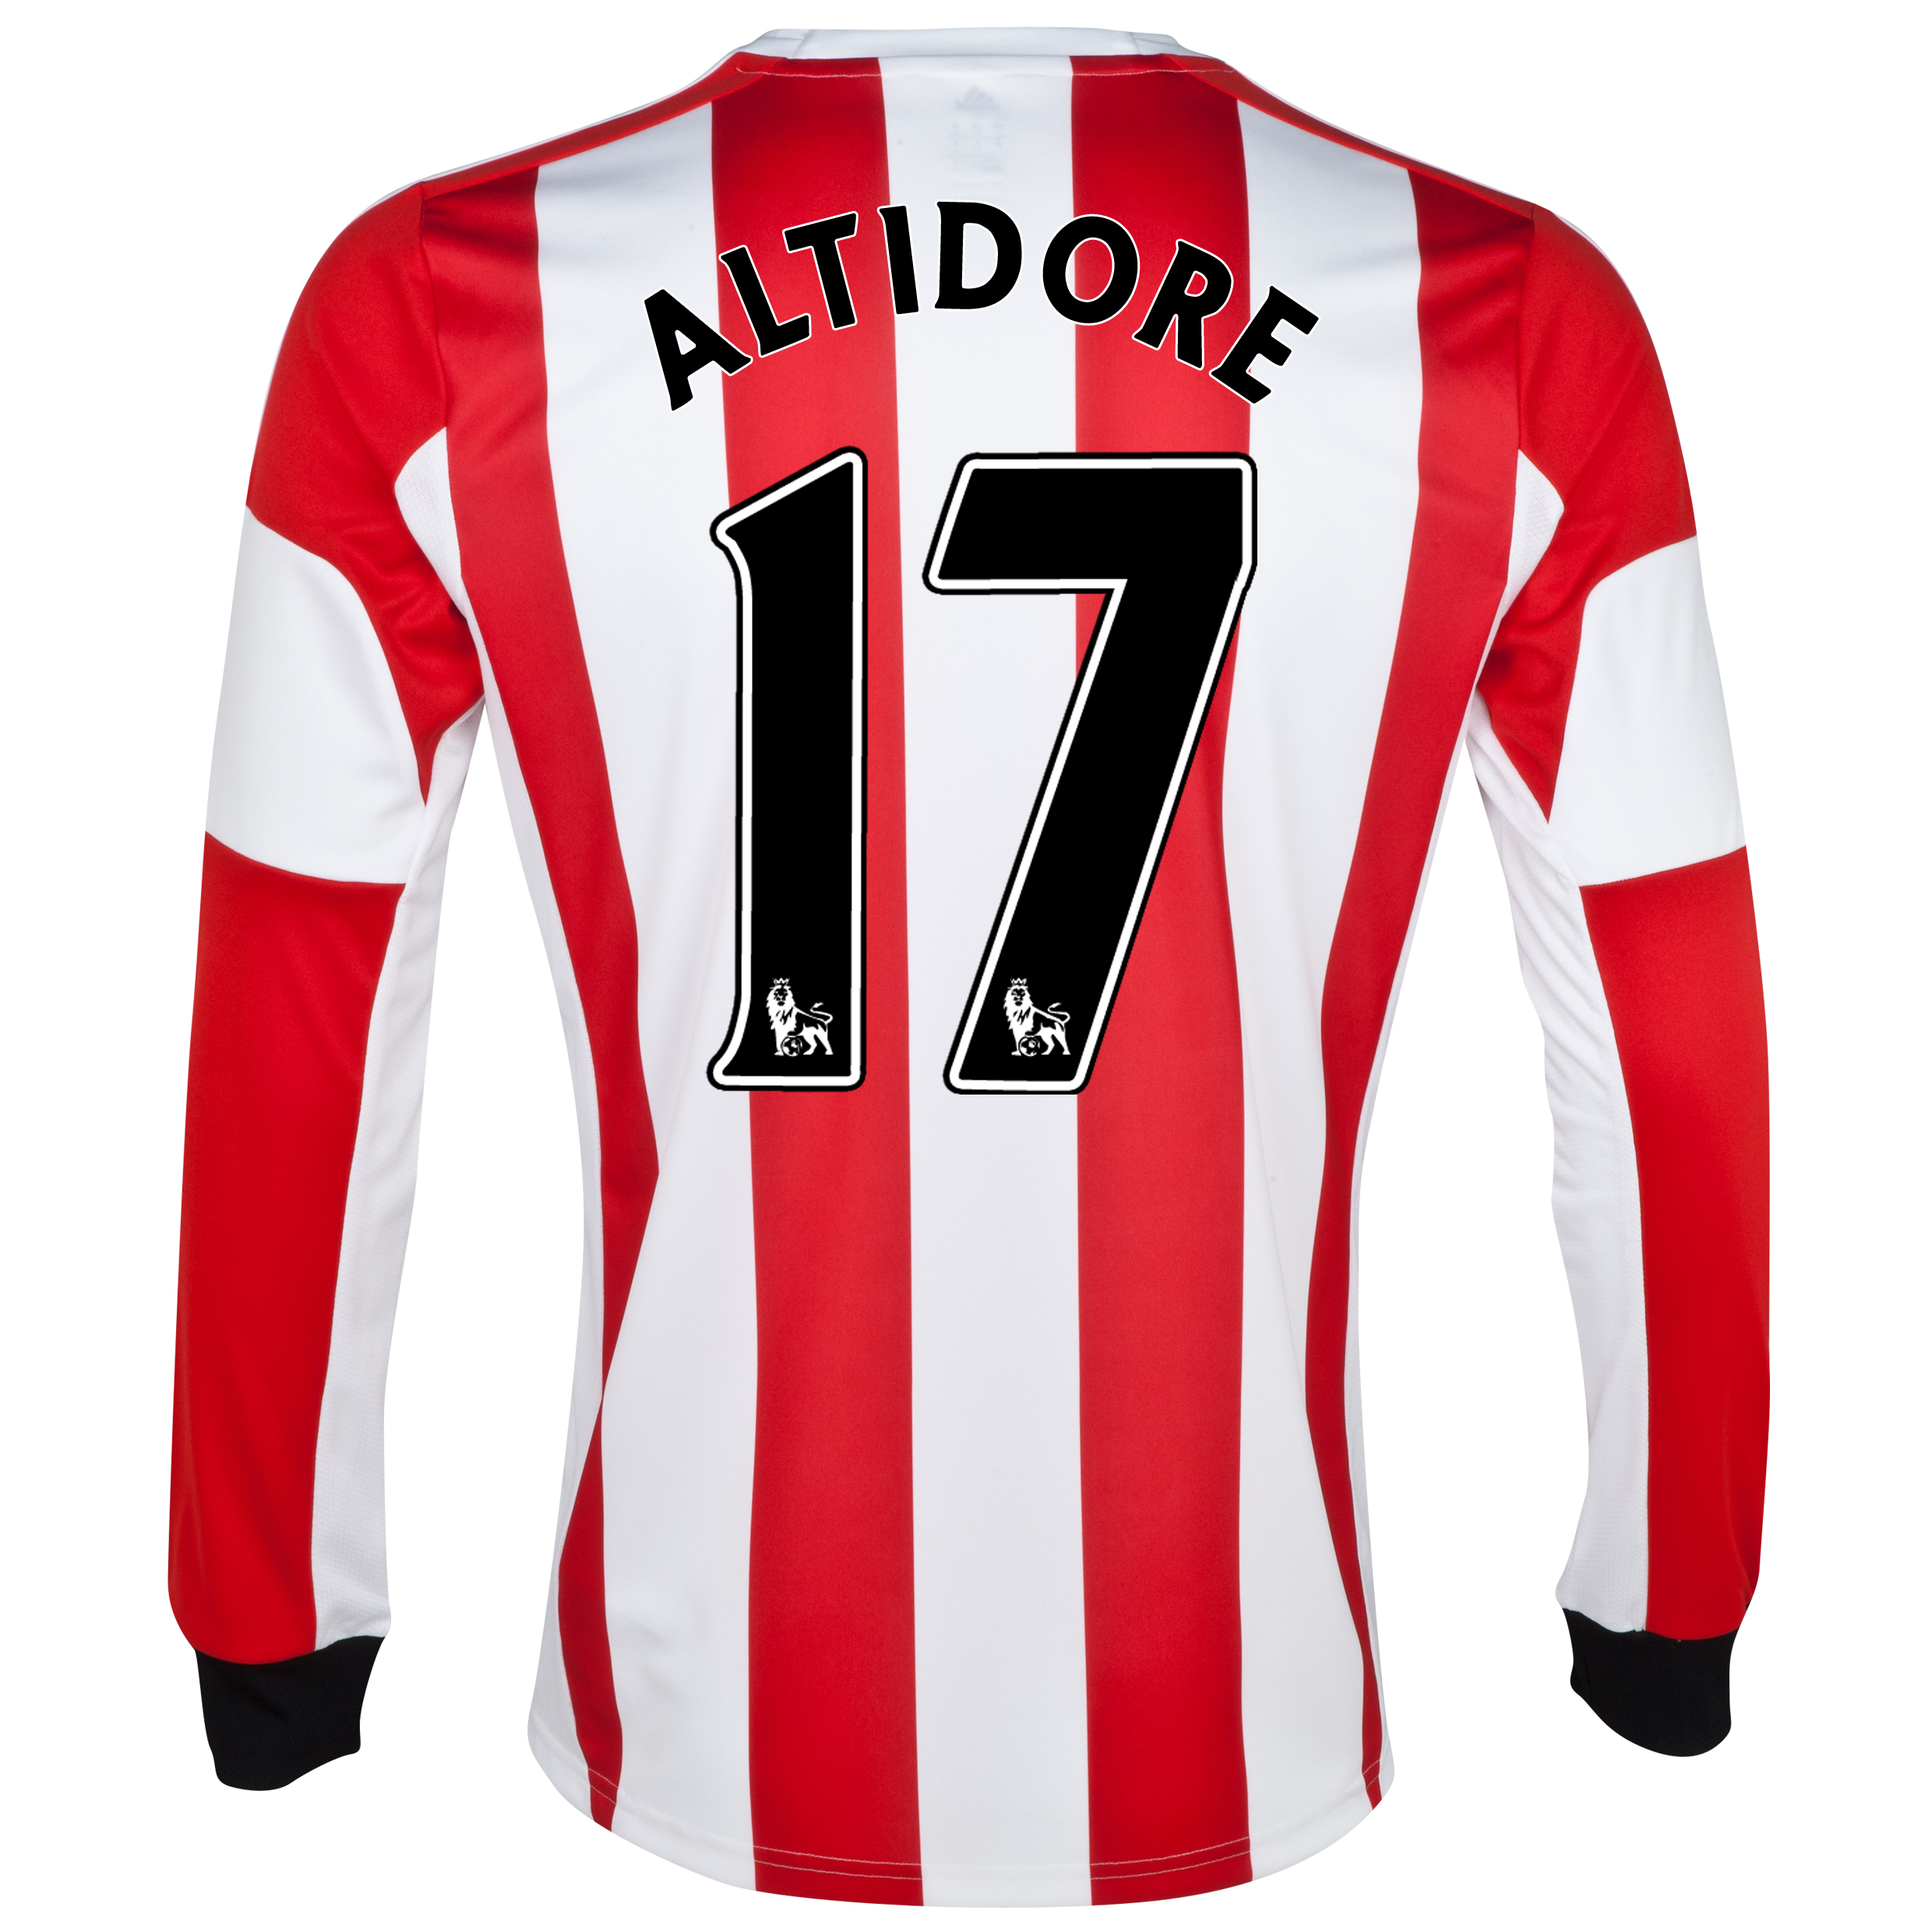 Sunderland Home Shirt 2013/14 - Long Sleeved - Junior with Altidore 17 printing